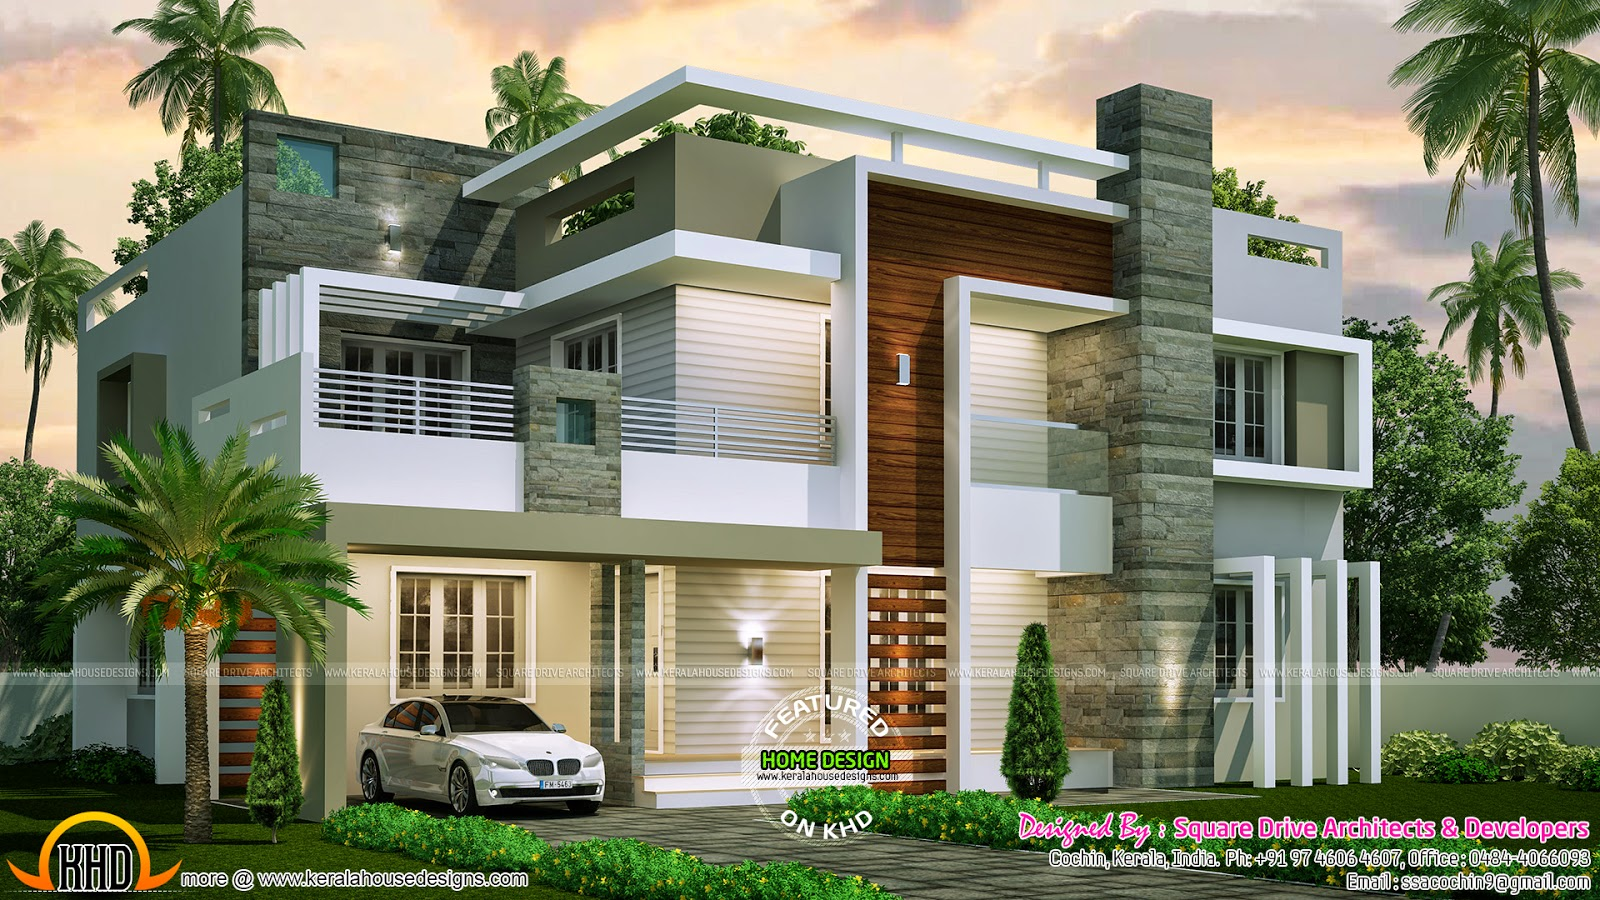 4 bedroom contemporary home design kerala home design for Modern house model